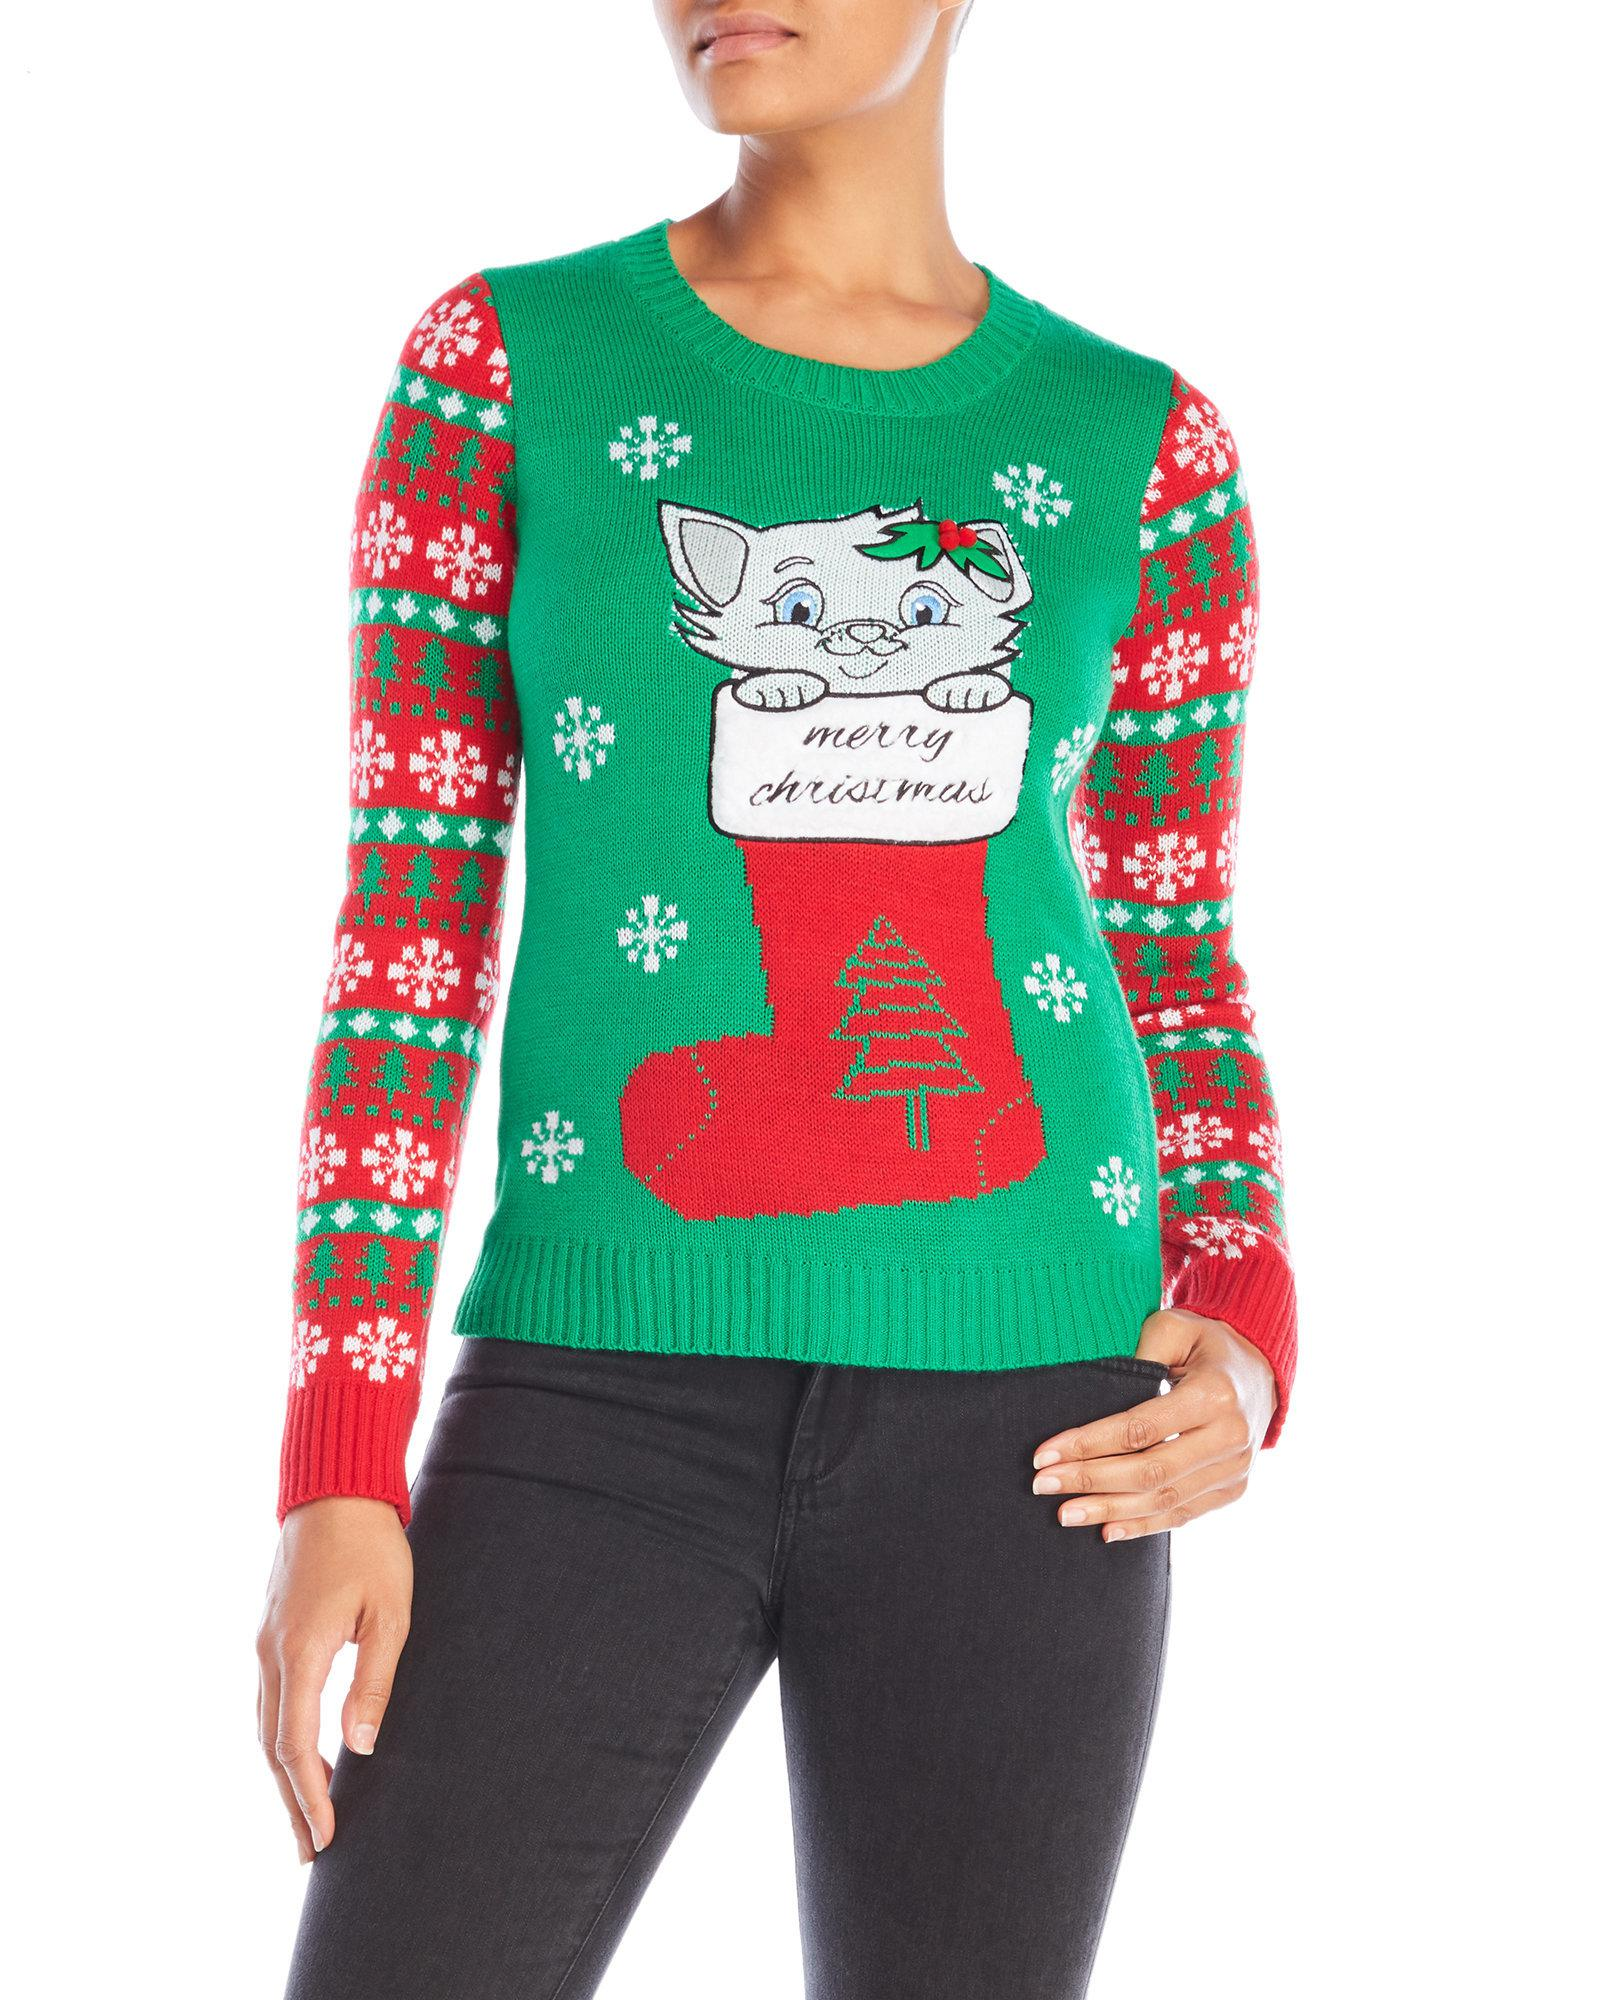 Lyst - Derek Heart Kitten Merry Christmas Sweater in Green